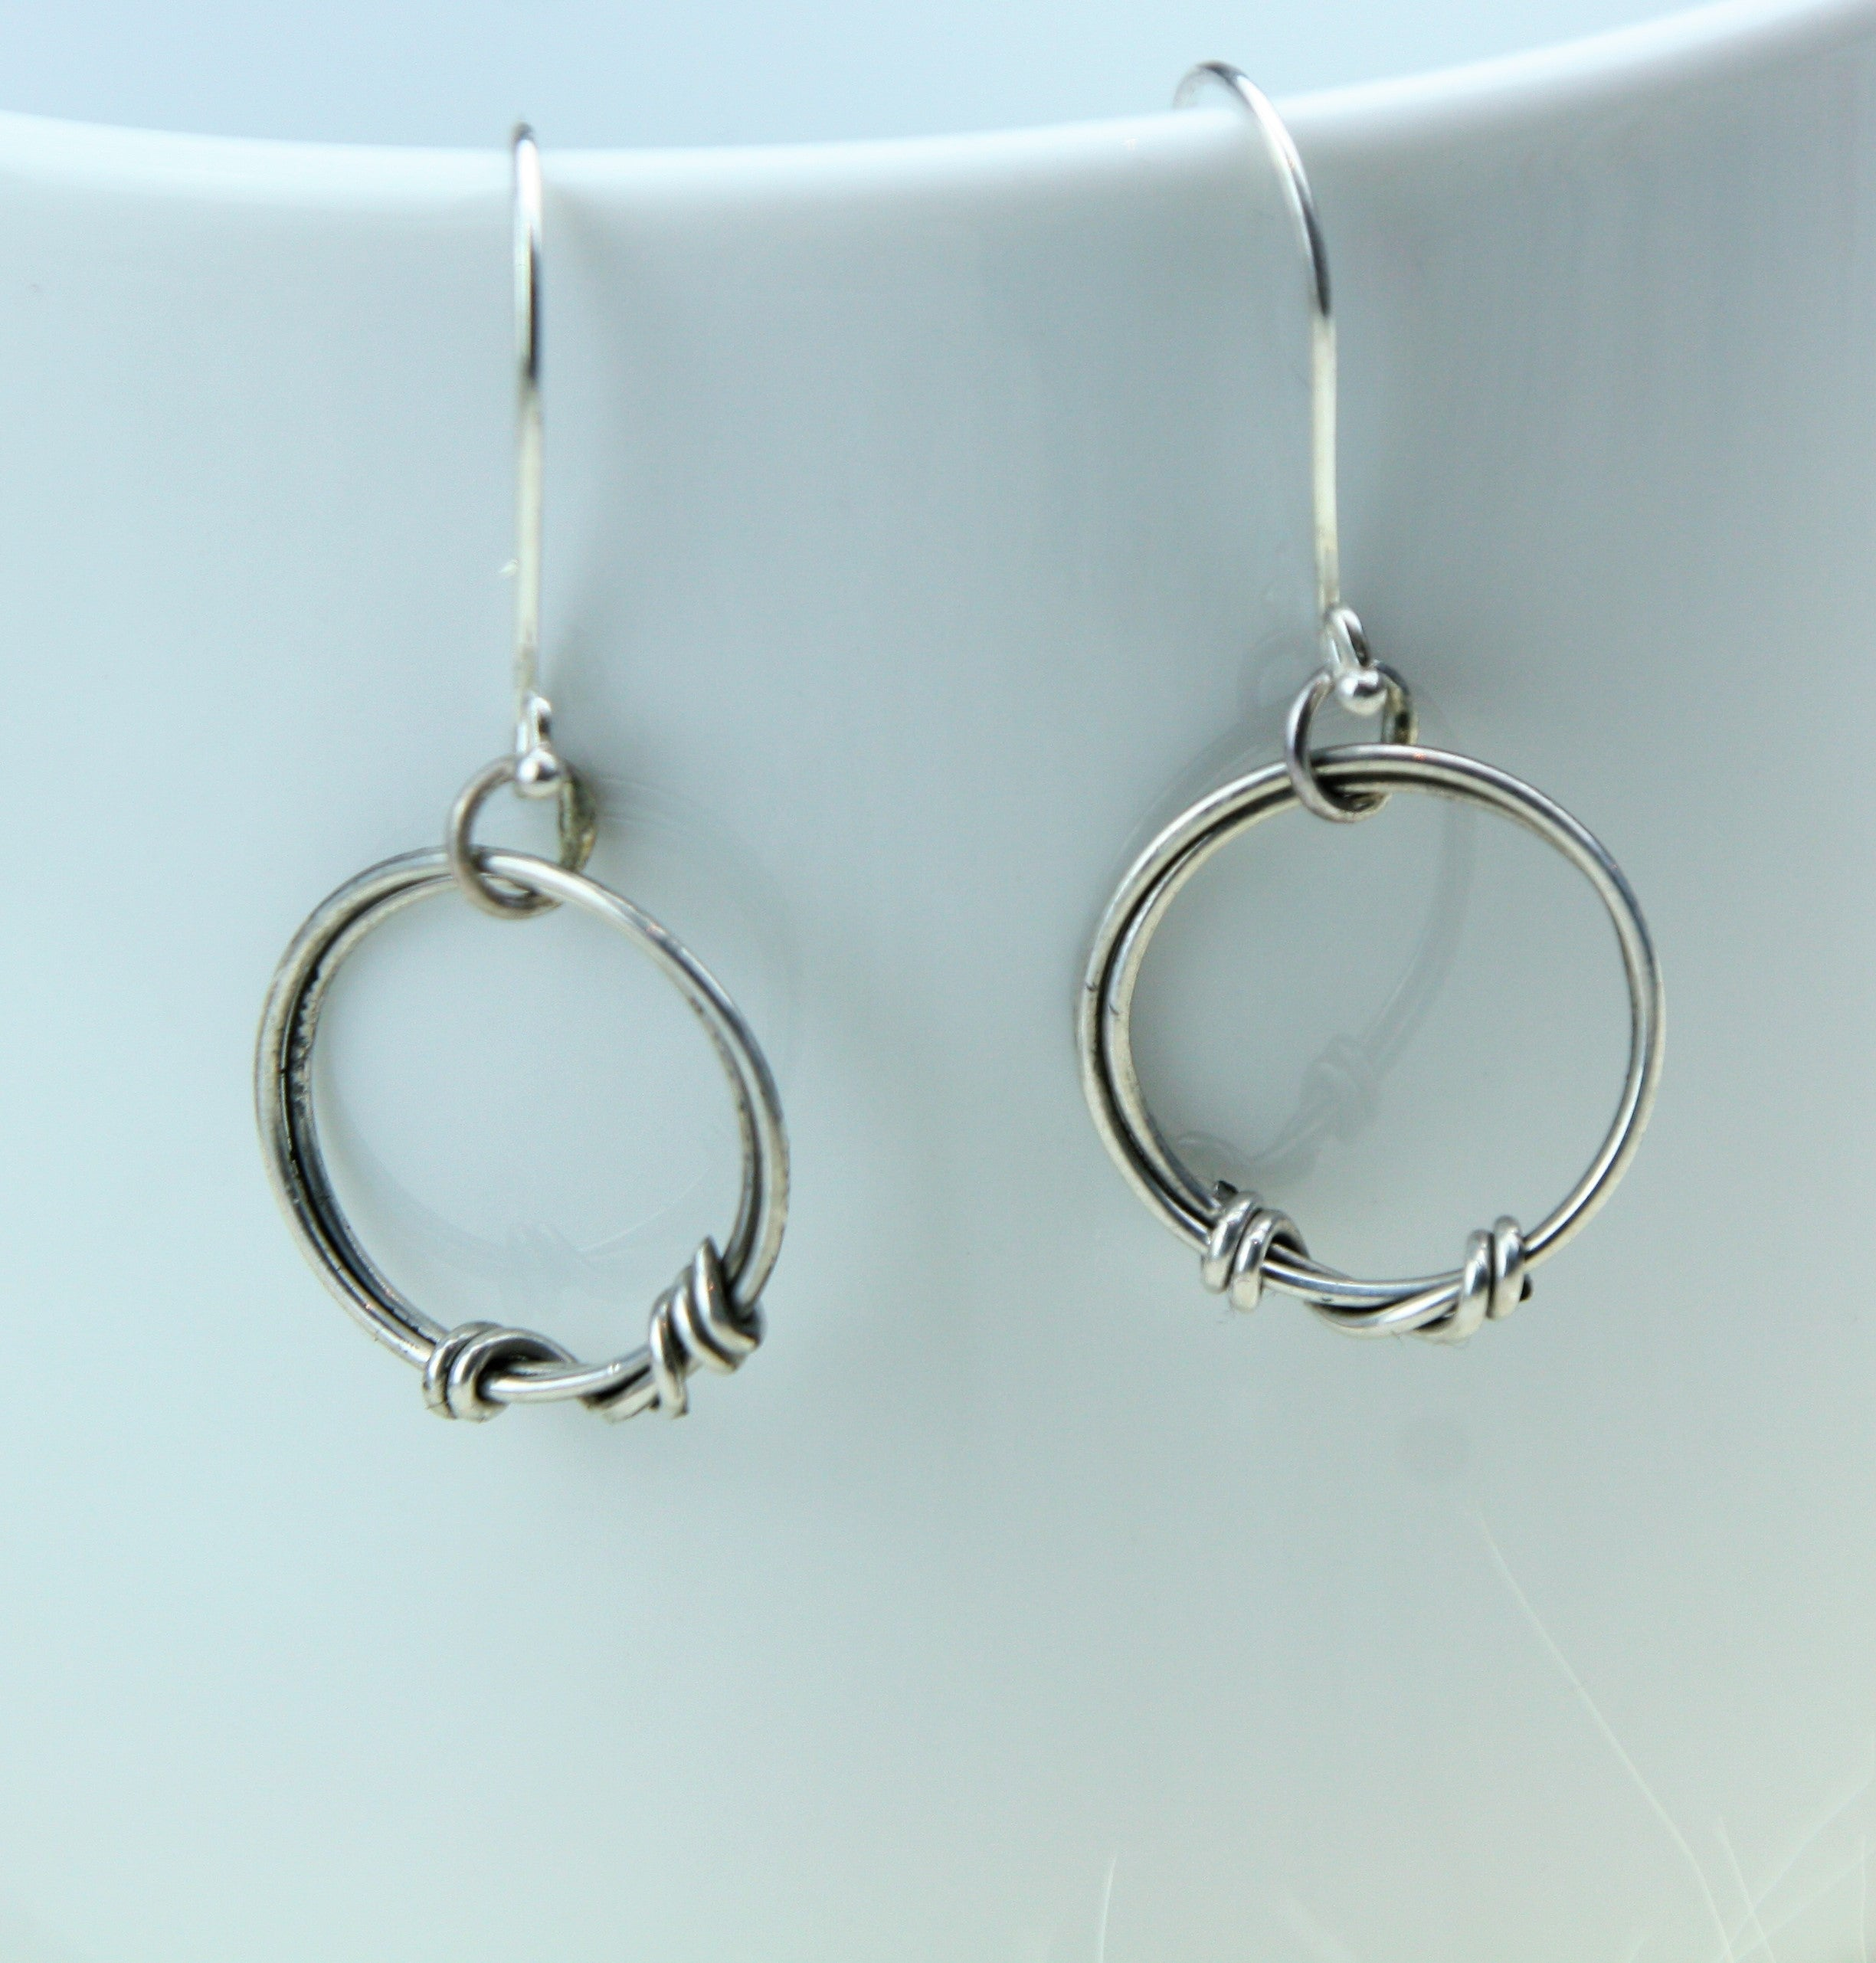 small Suspension hoop earrings in sterling silver